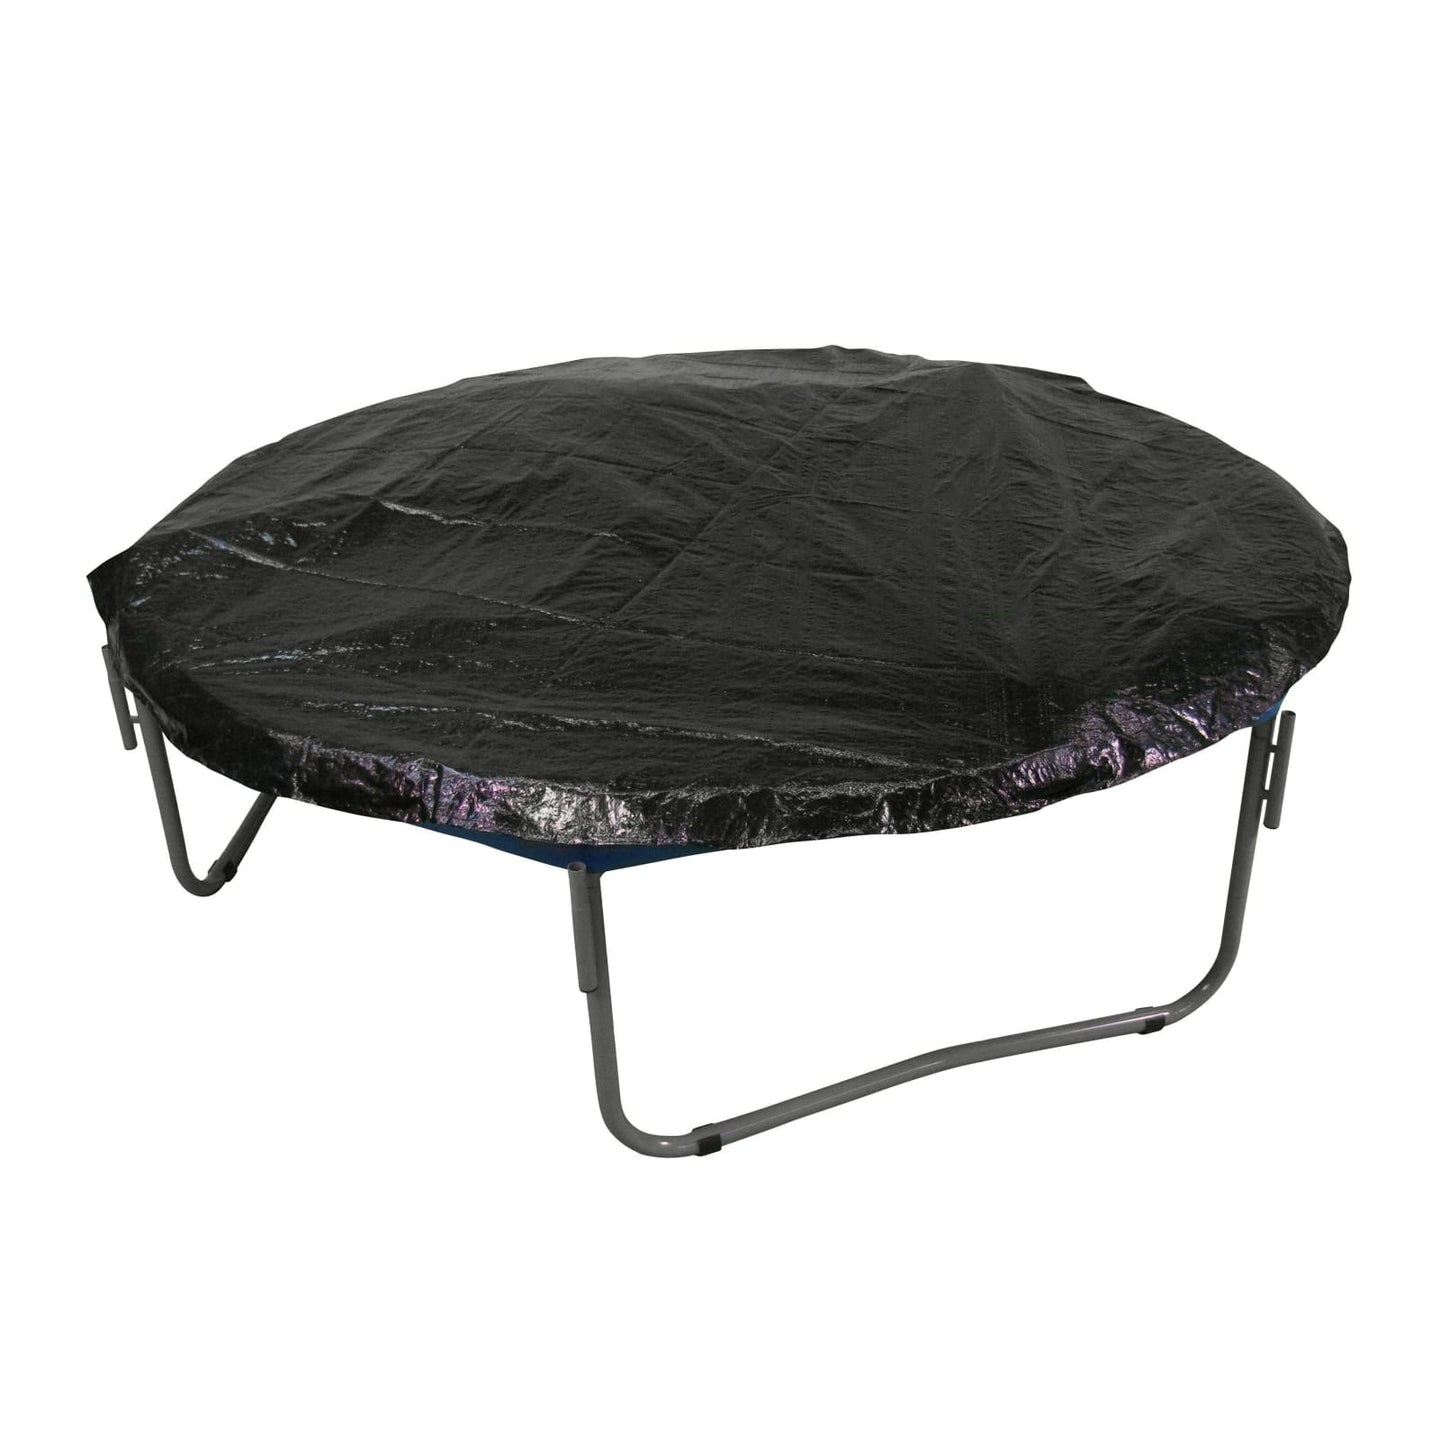 Upper Bounce Economy Trampoline Weather Protection Cover Fits For 8 Ft. Round Frames - Black - Trampoline Accessories